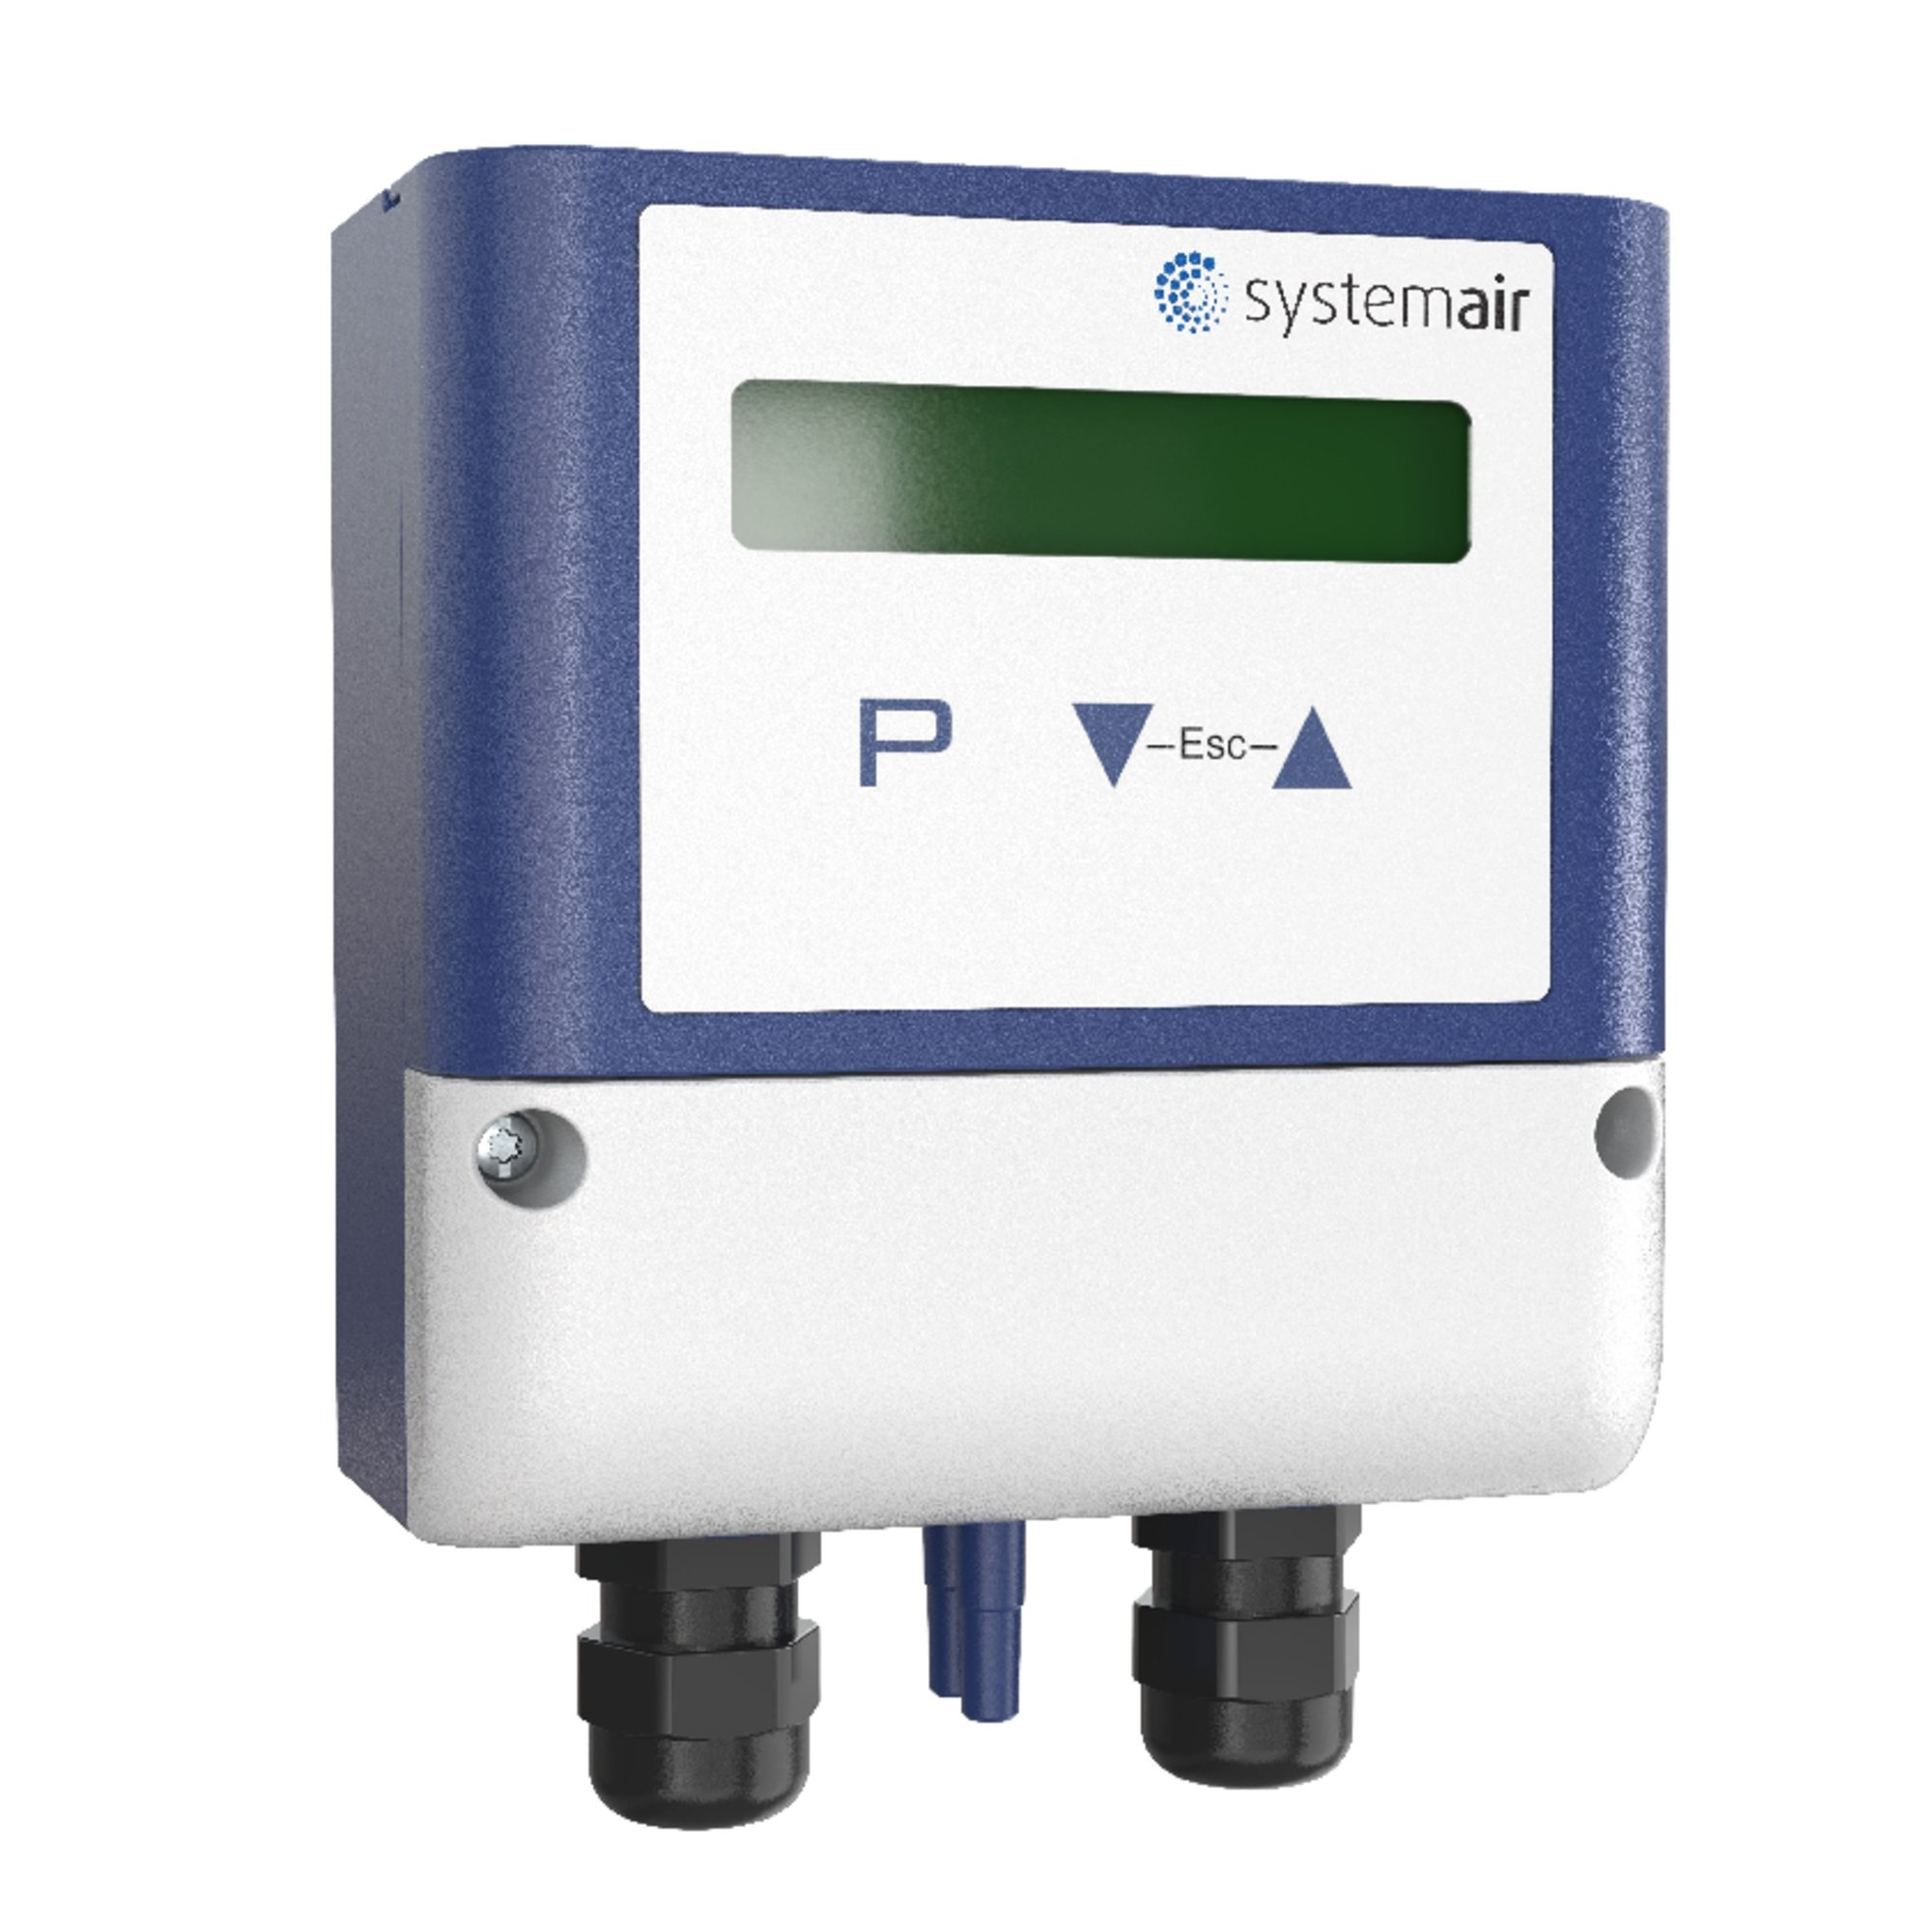 PCA 1000D2 Pressure controller - Systemair